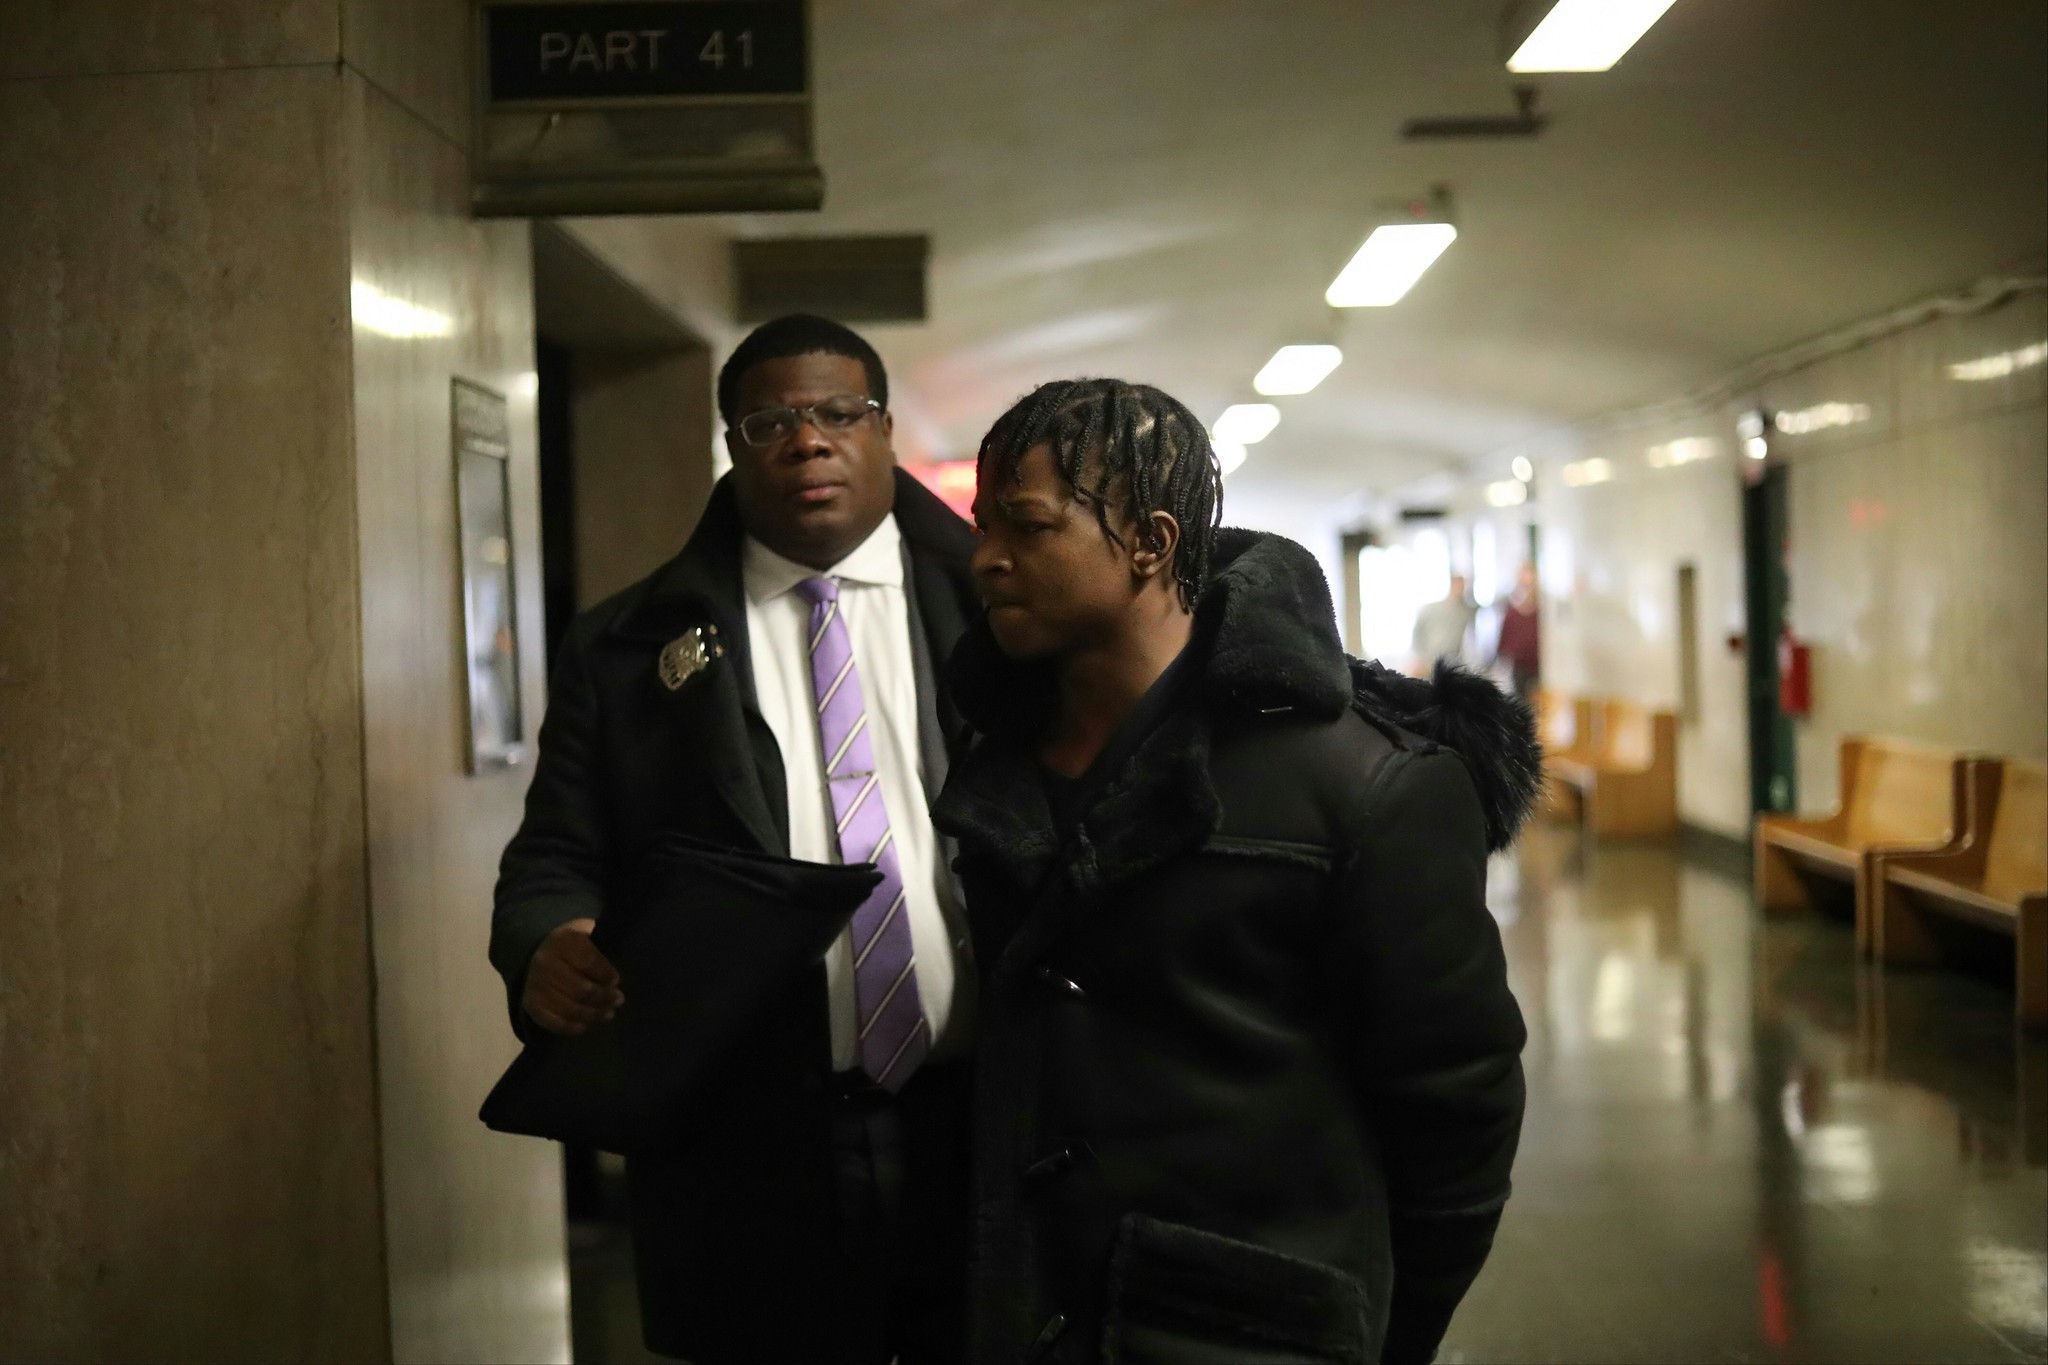 Alleged drunk driver who fatally struck NYC homeless man indicted on manslaughter charges